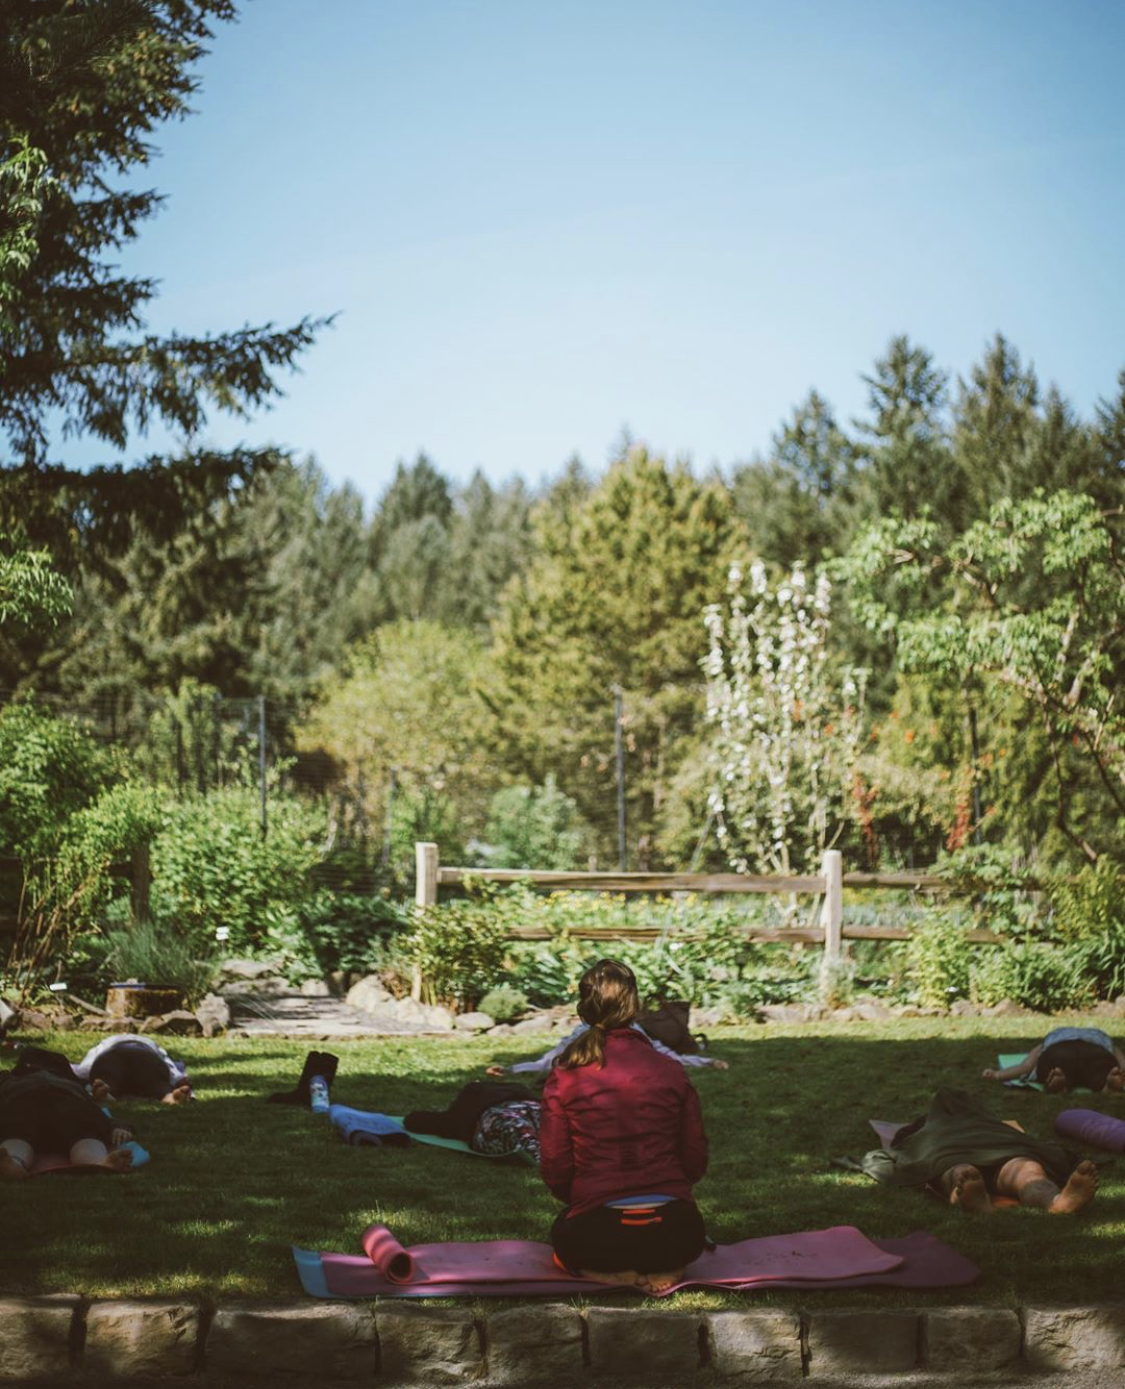 Yoga in the garden of the Dundee hills